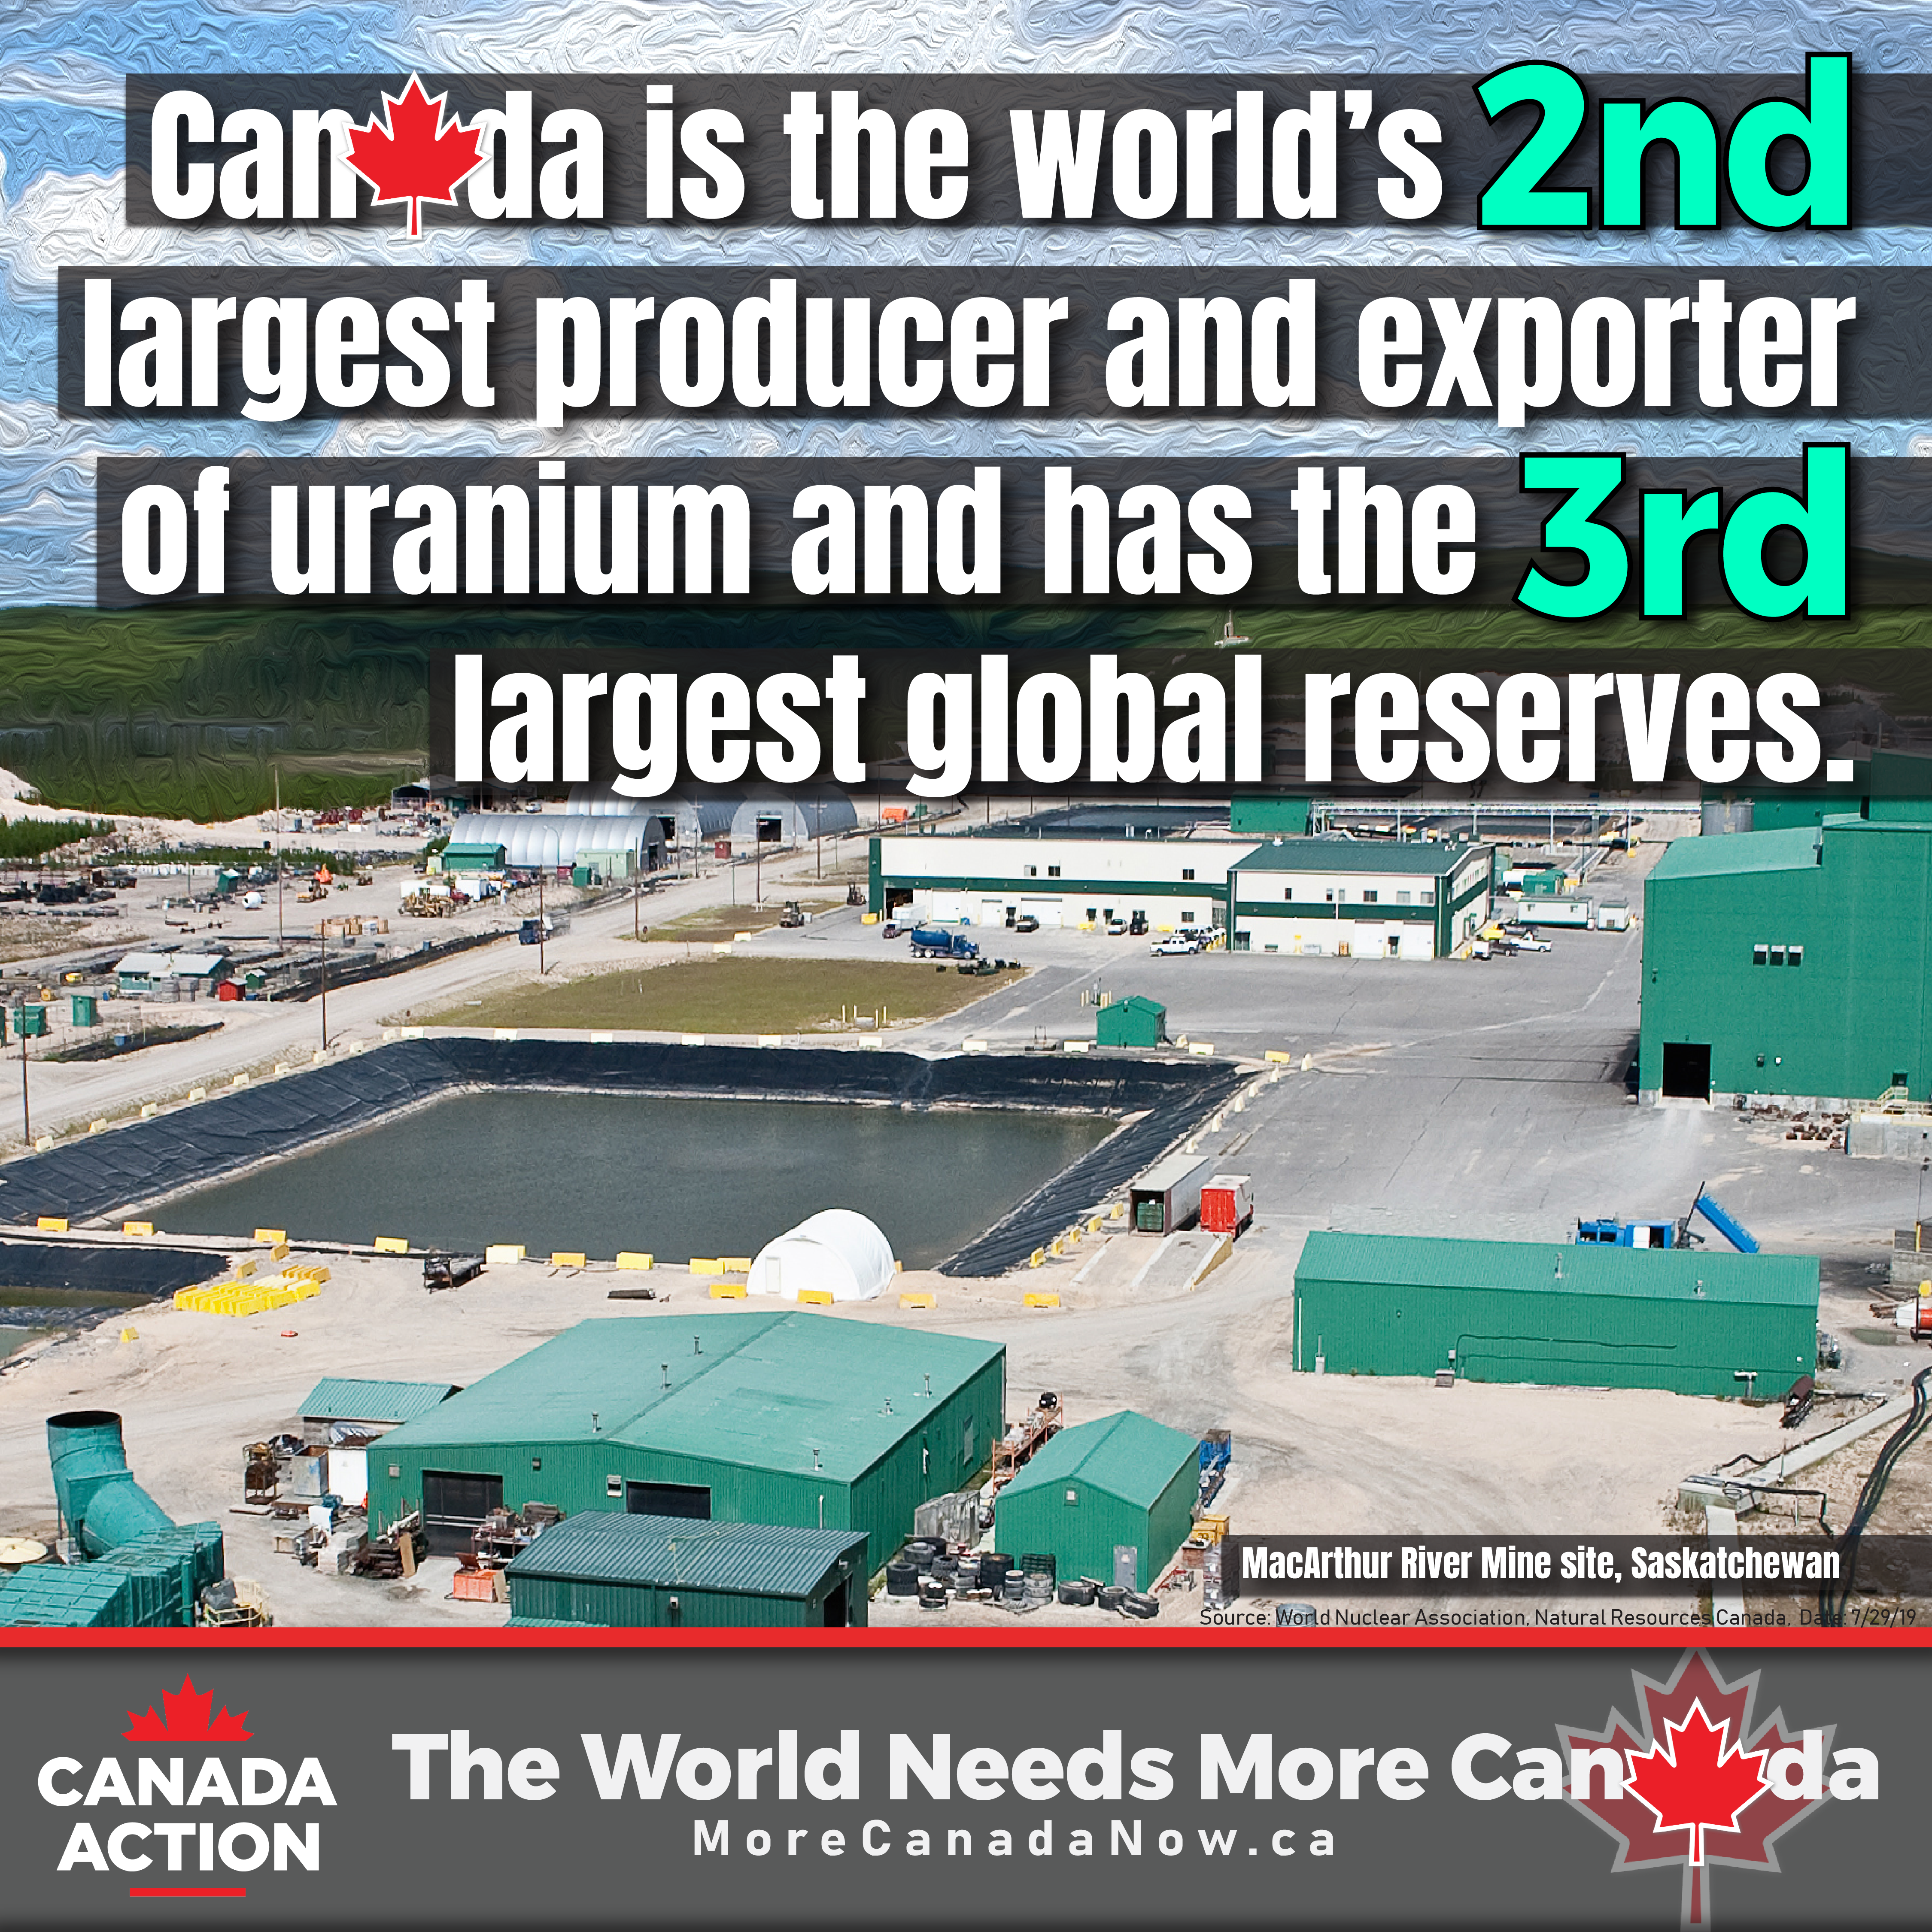 Canada is a top global uranium producer and exporter